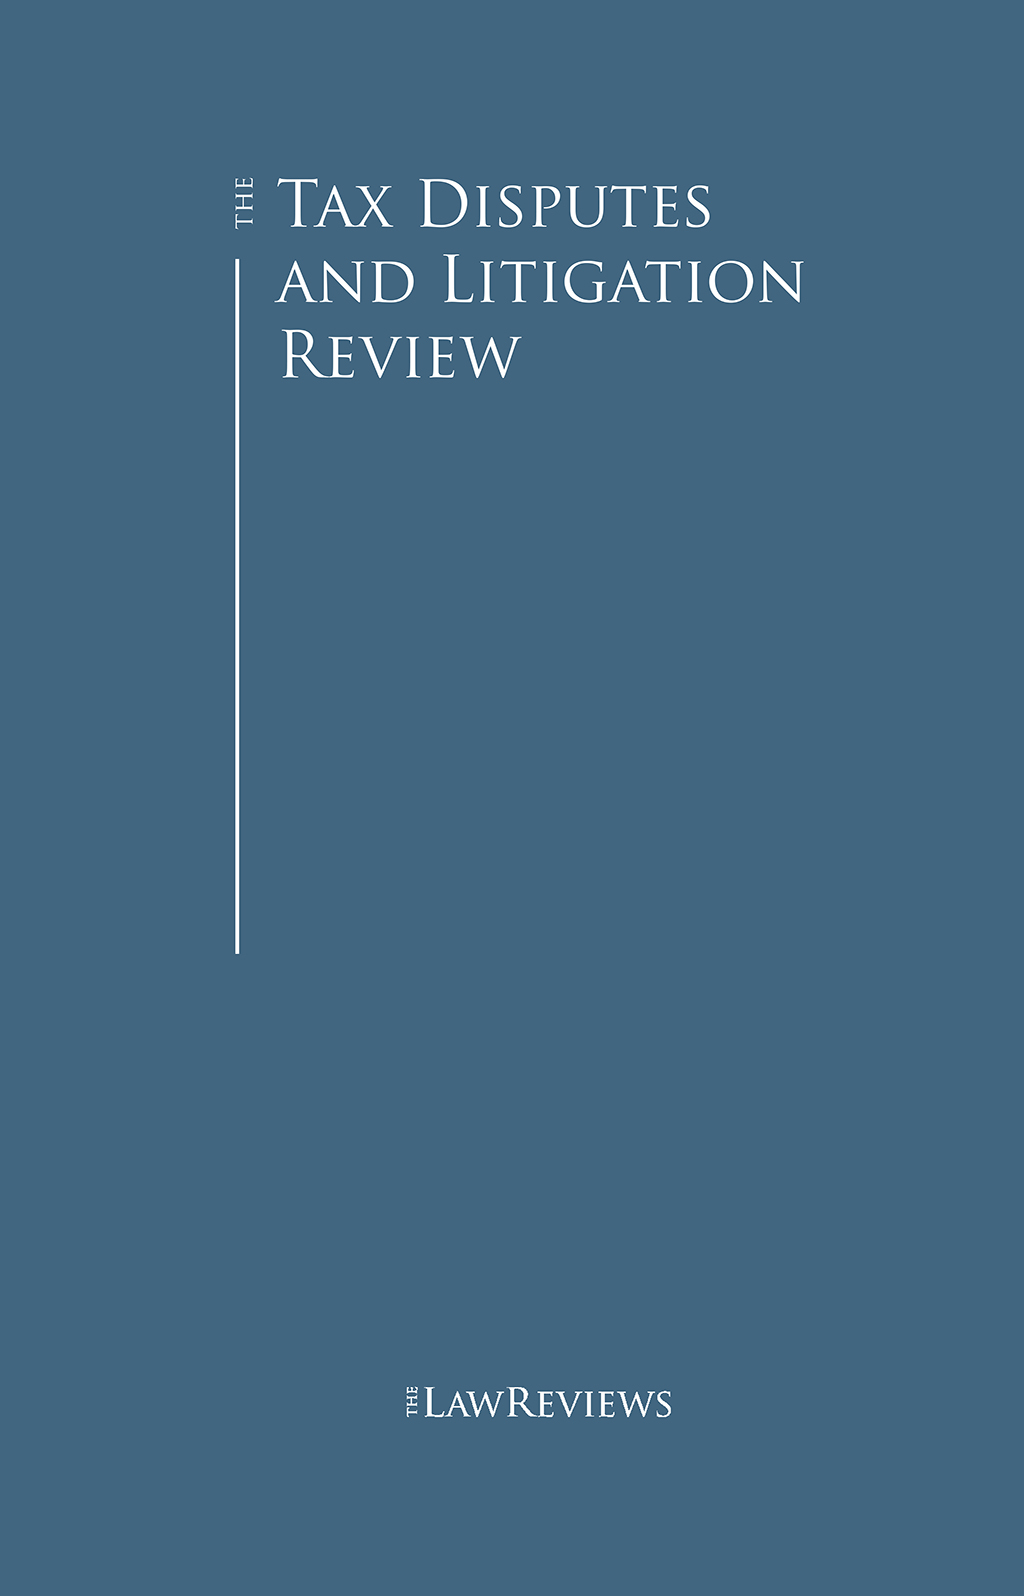 The Tax Disputes and Litigation Review